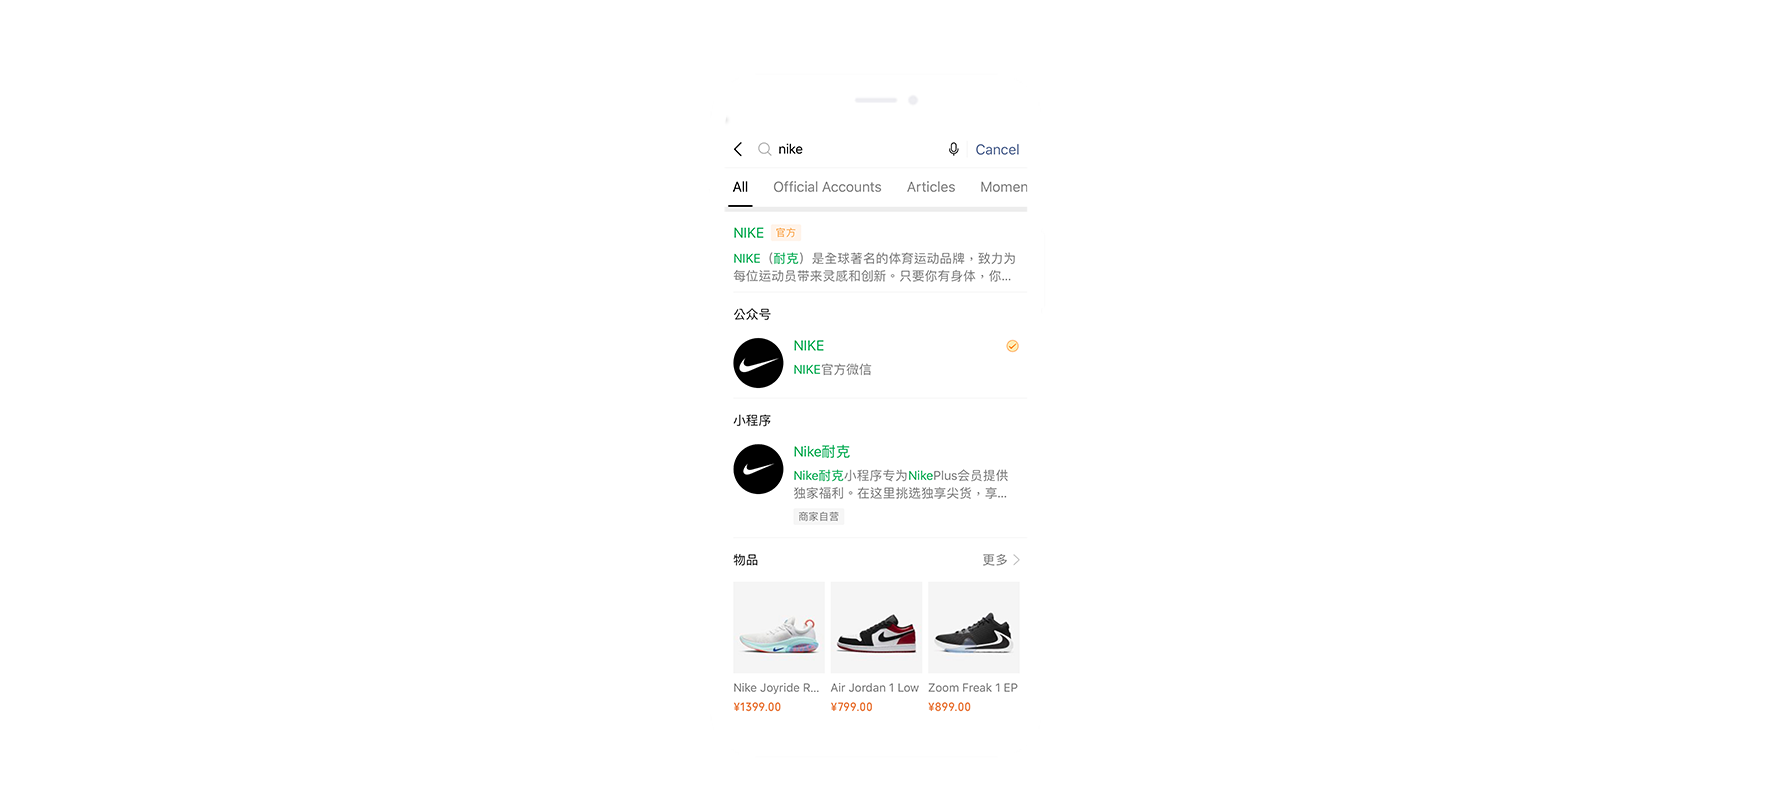 WeChat Nike search functions section